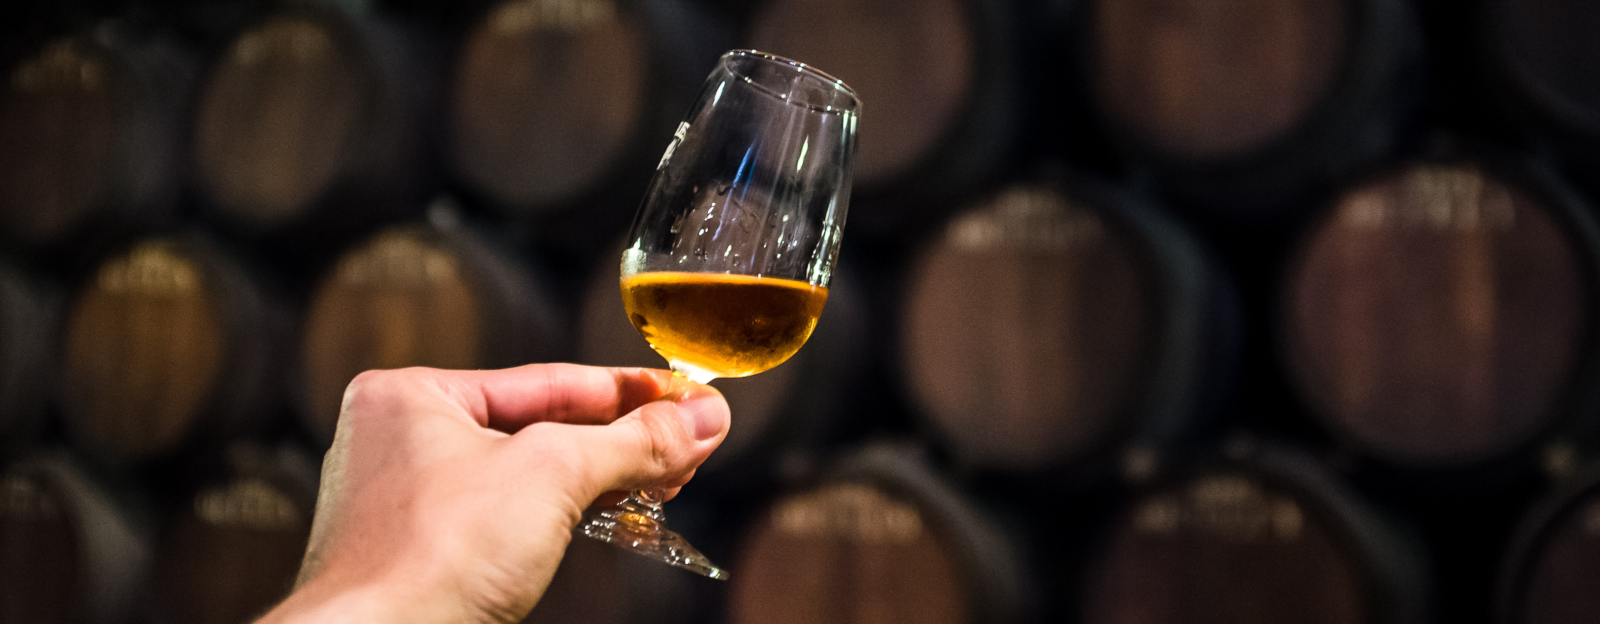 Insuring your private whisky collection - Insights Post